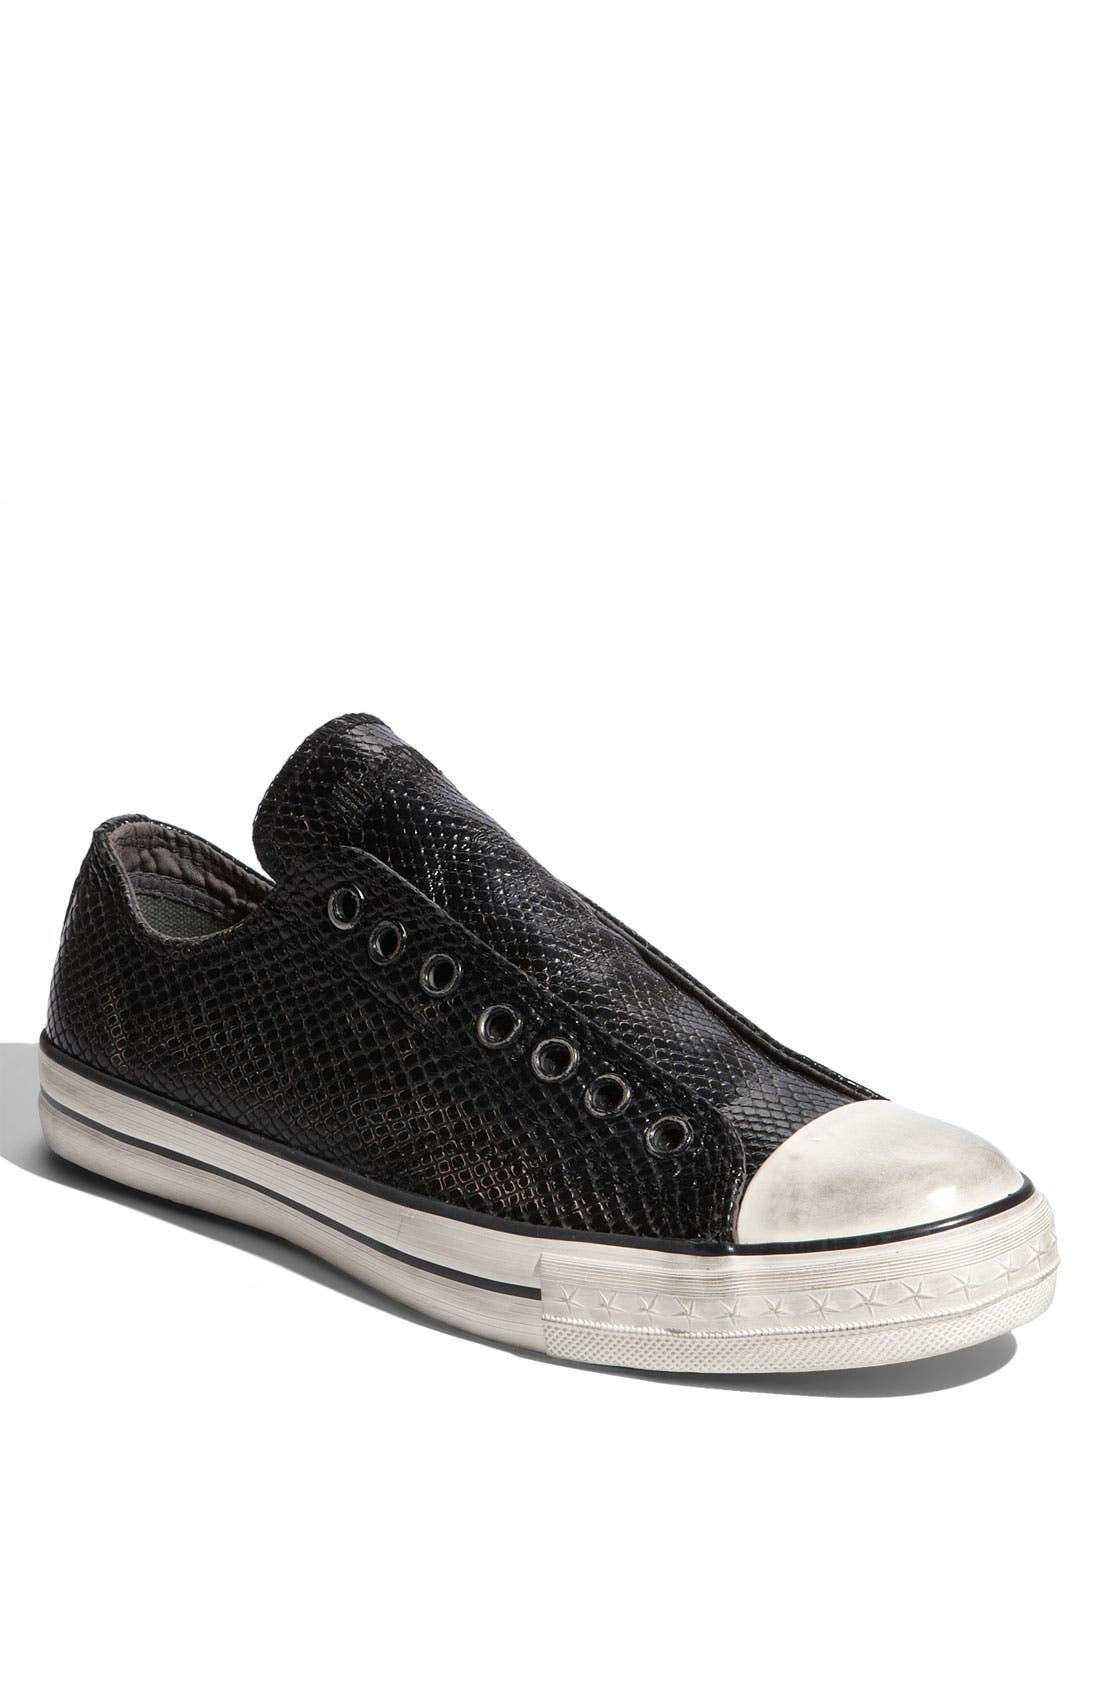 Main Image - Converse Chuck Taylor® Textured Leather Slip-On